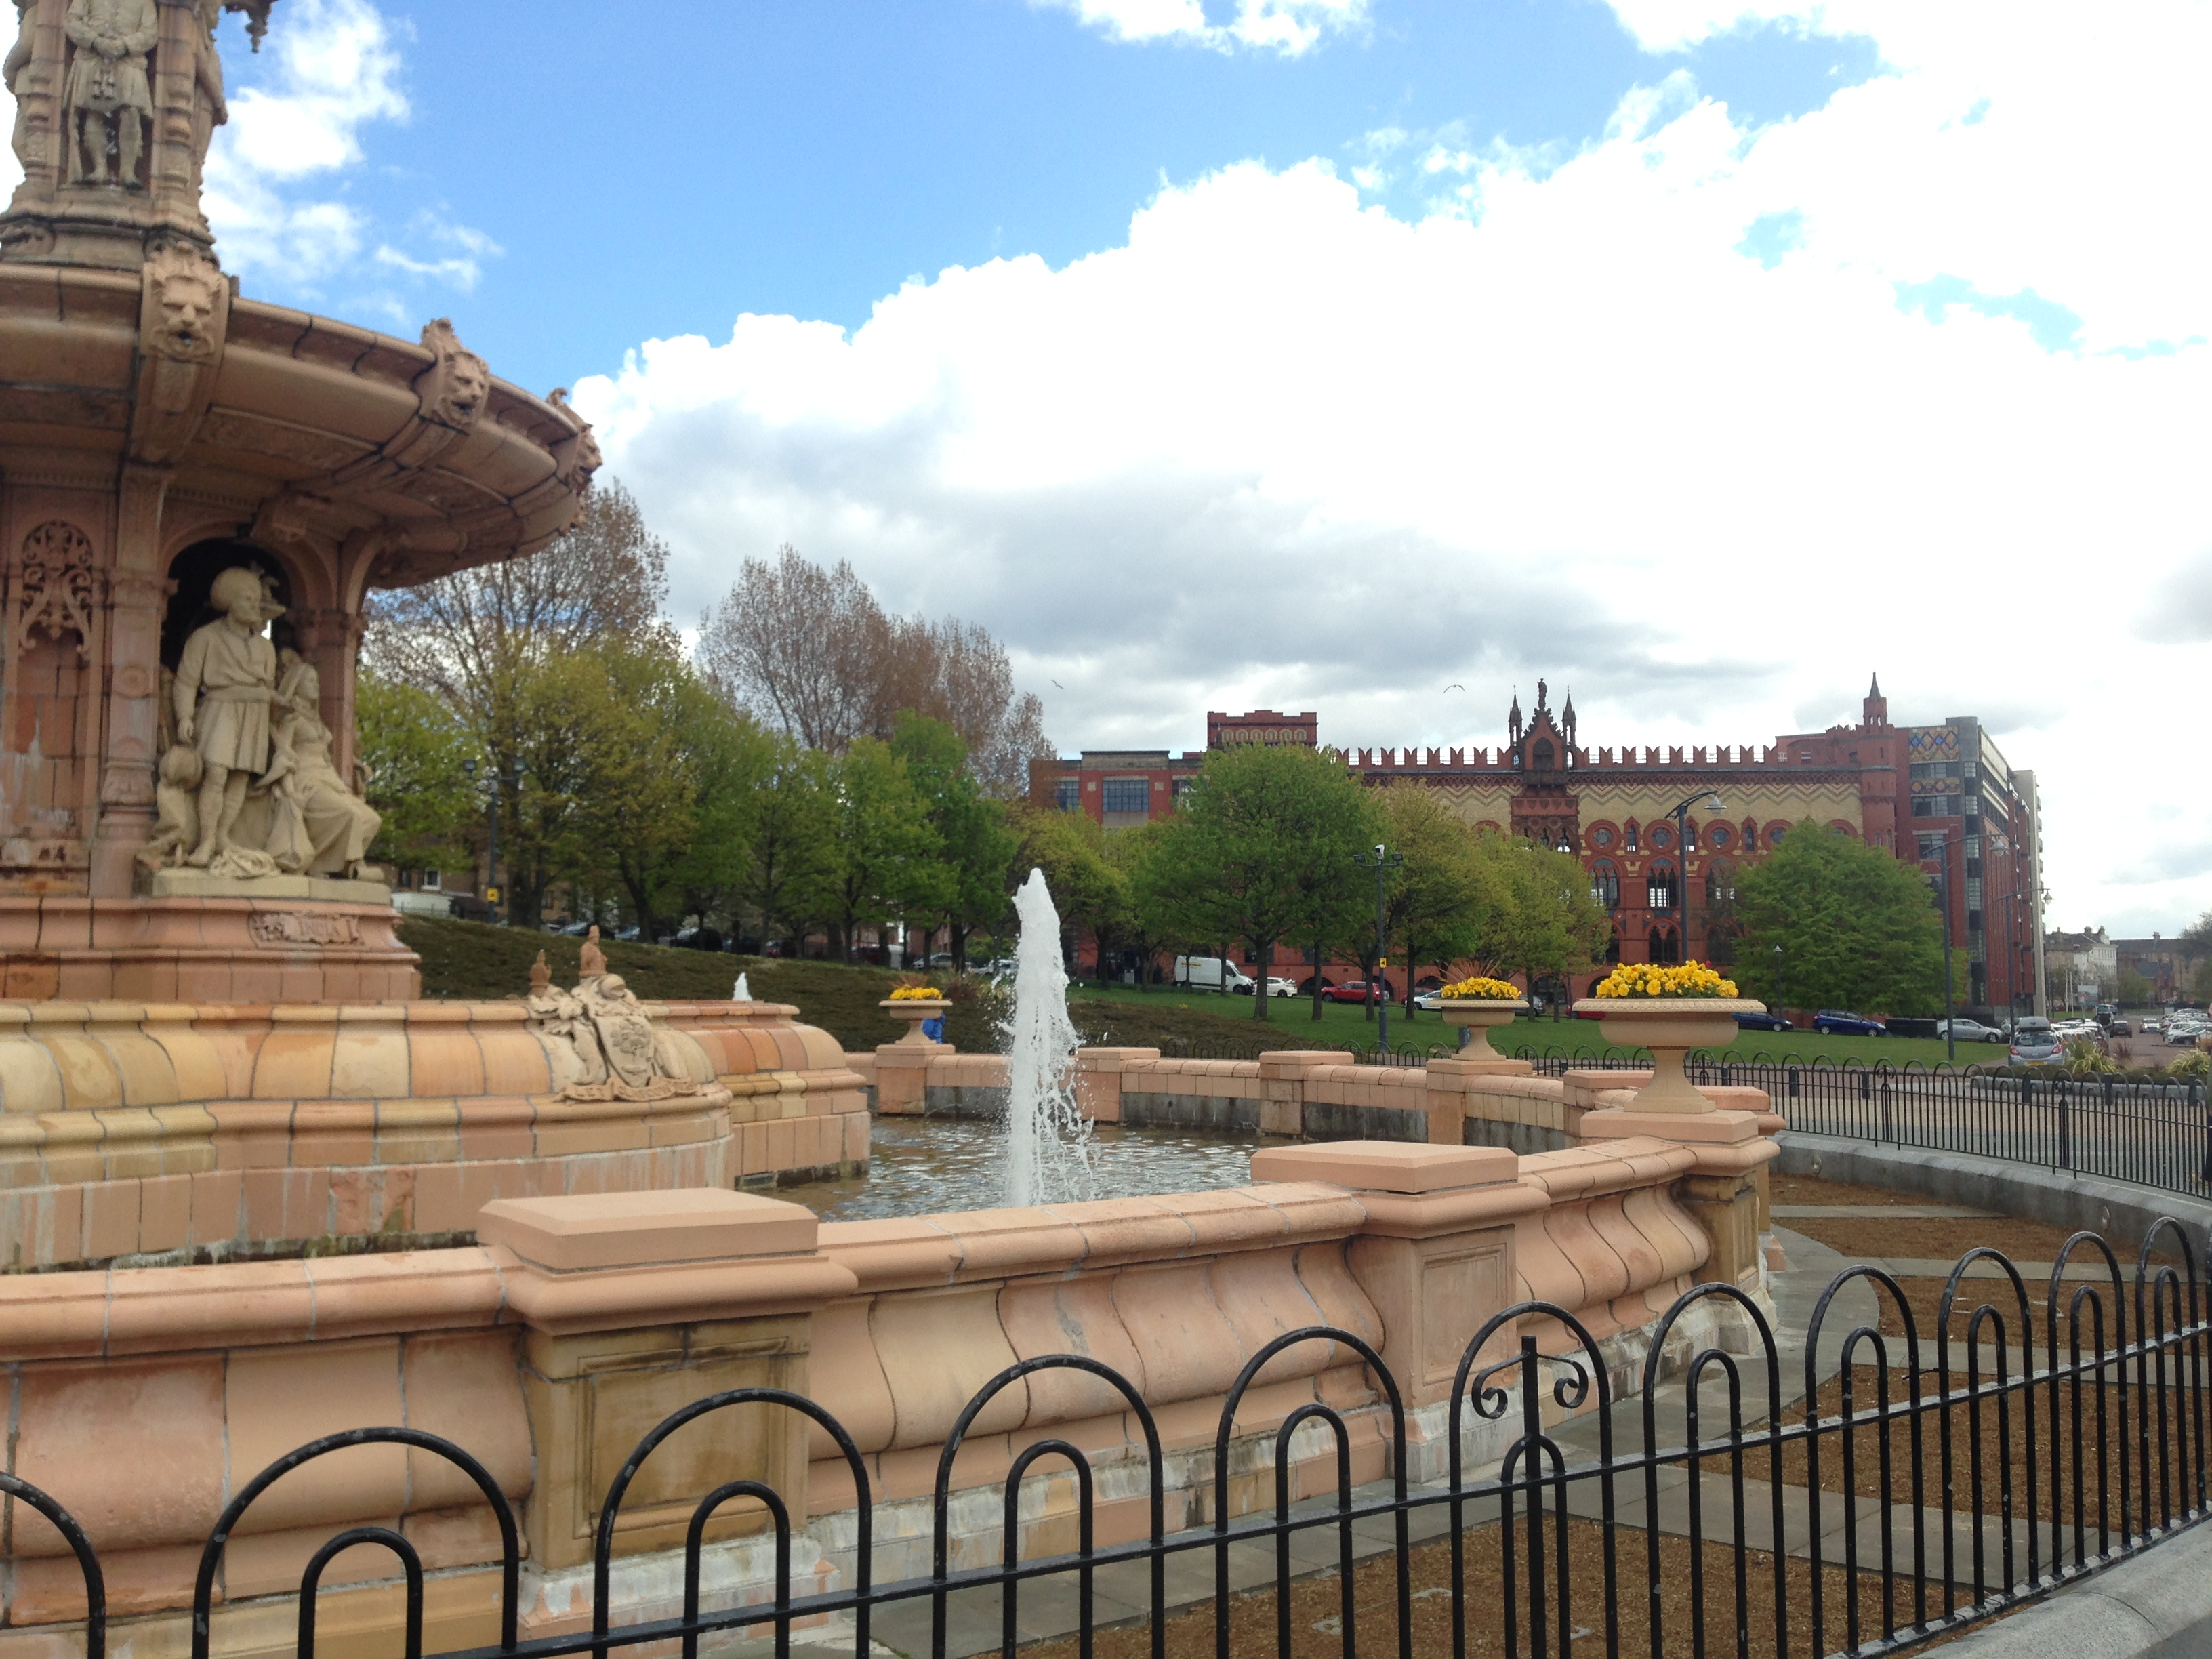 That fountain and carpet factory